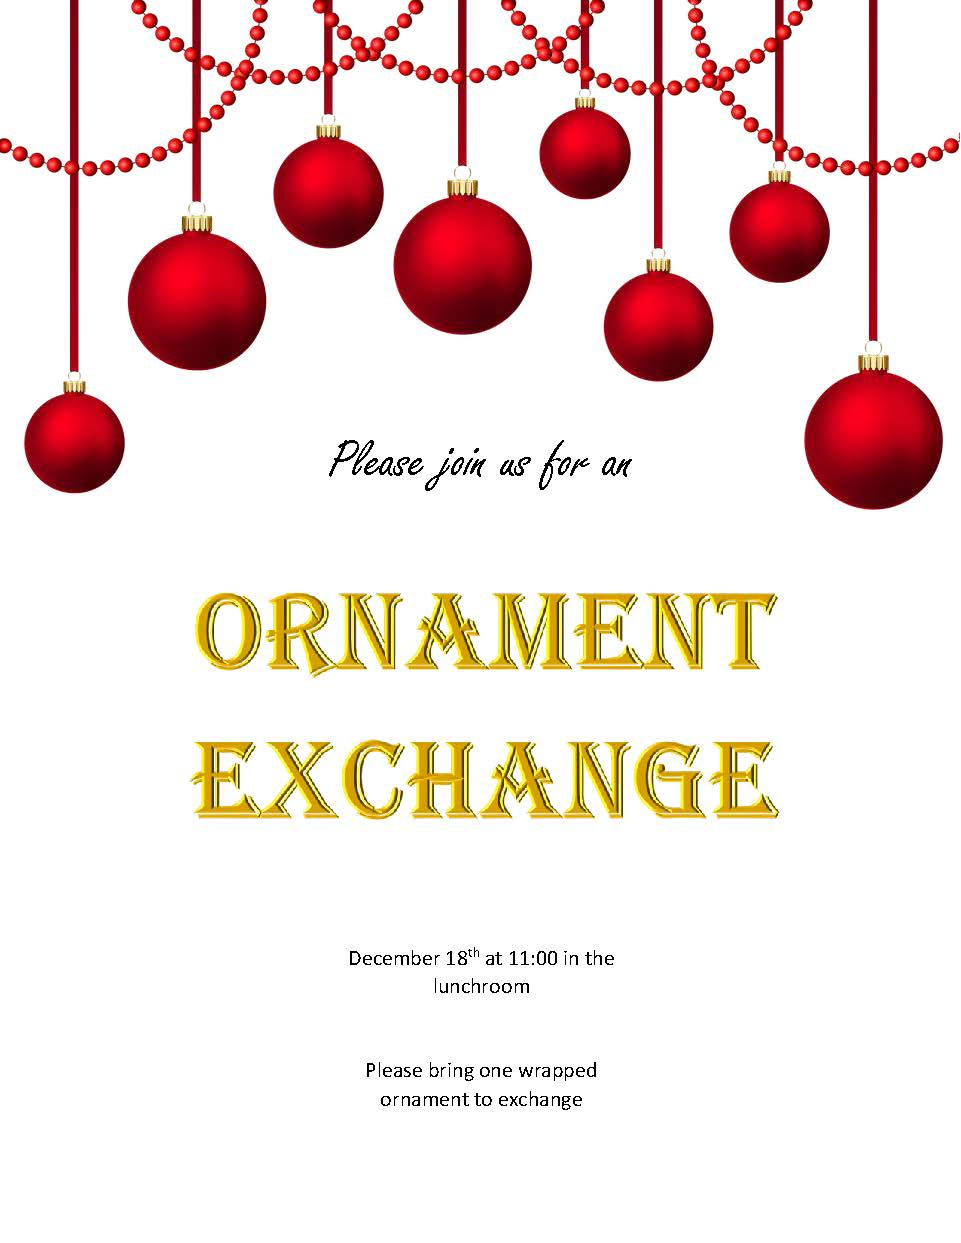 Ornament Exchange.jpg